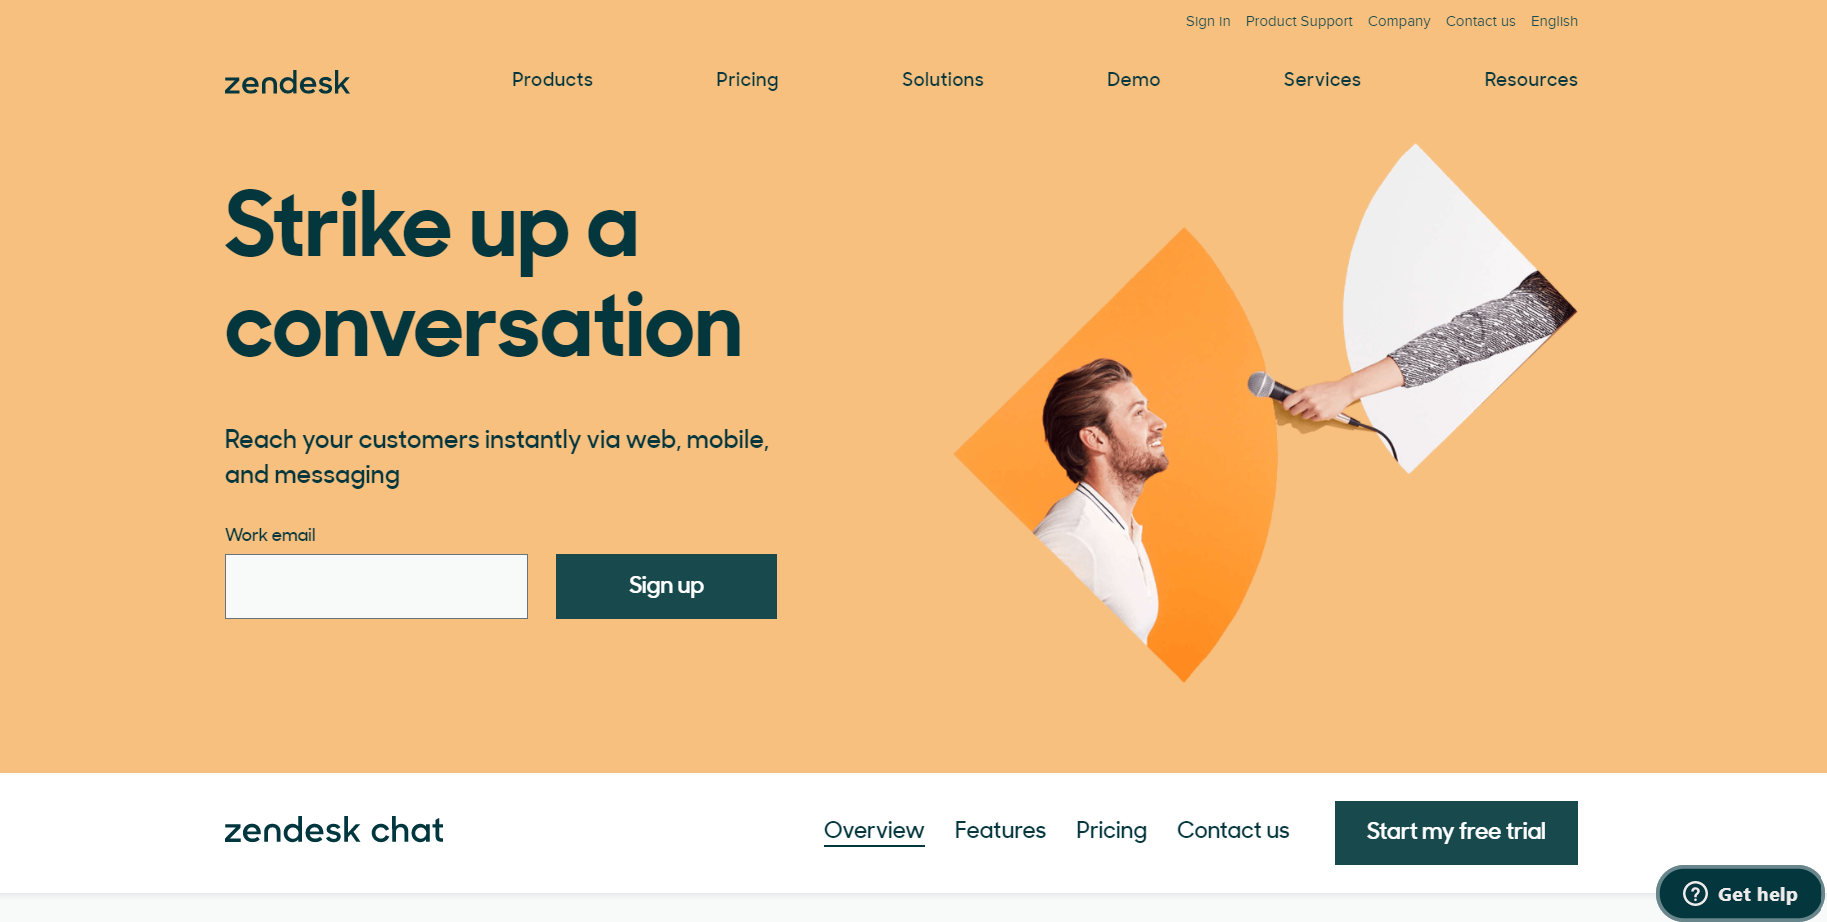 zendesk-chat-for-your-business